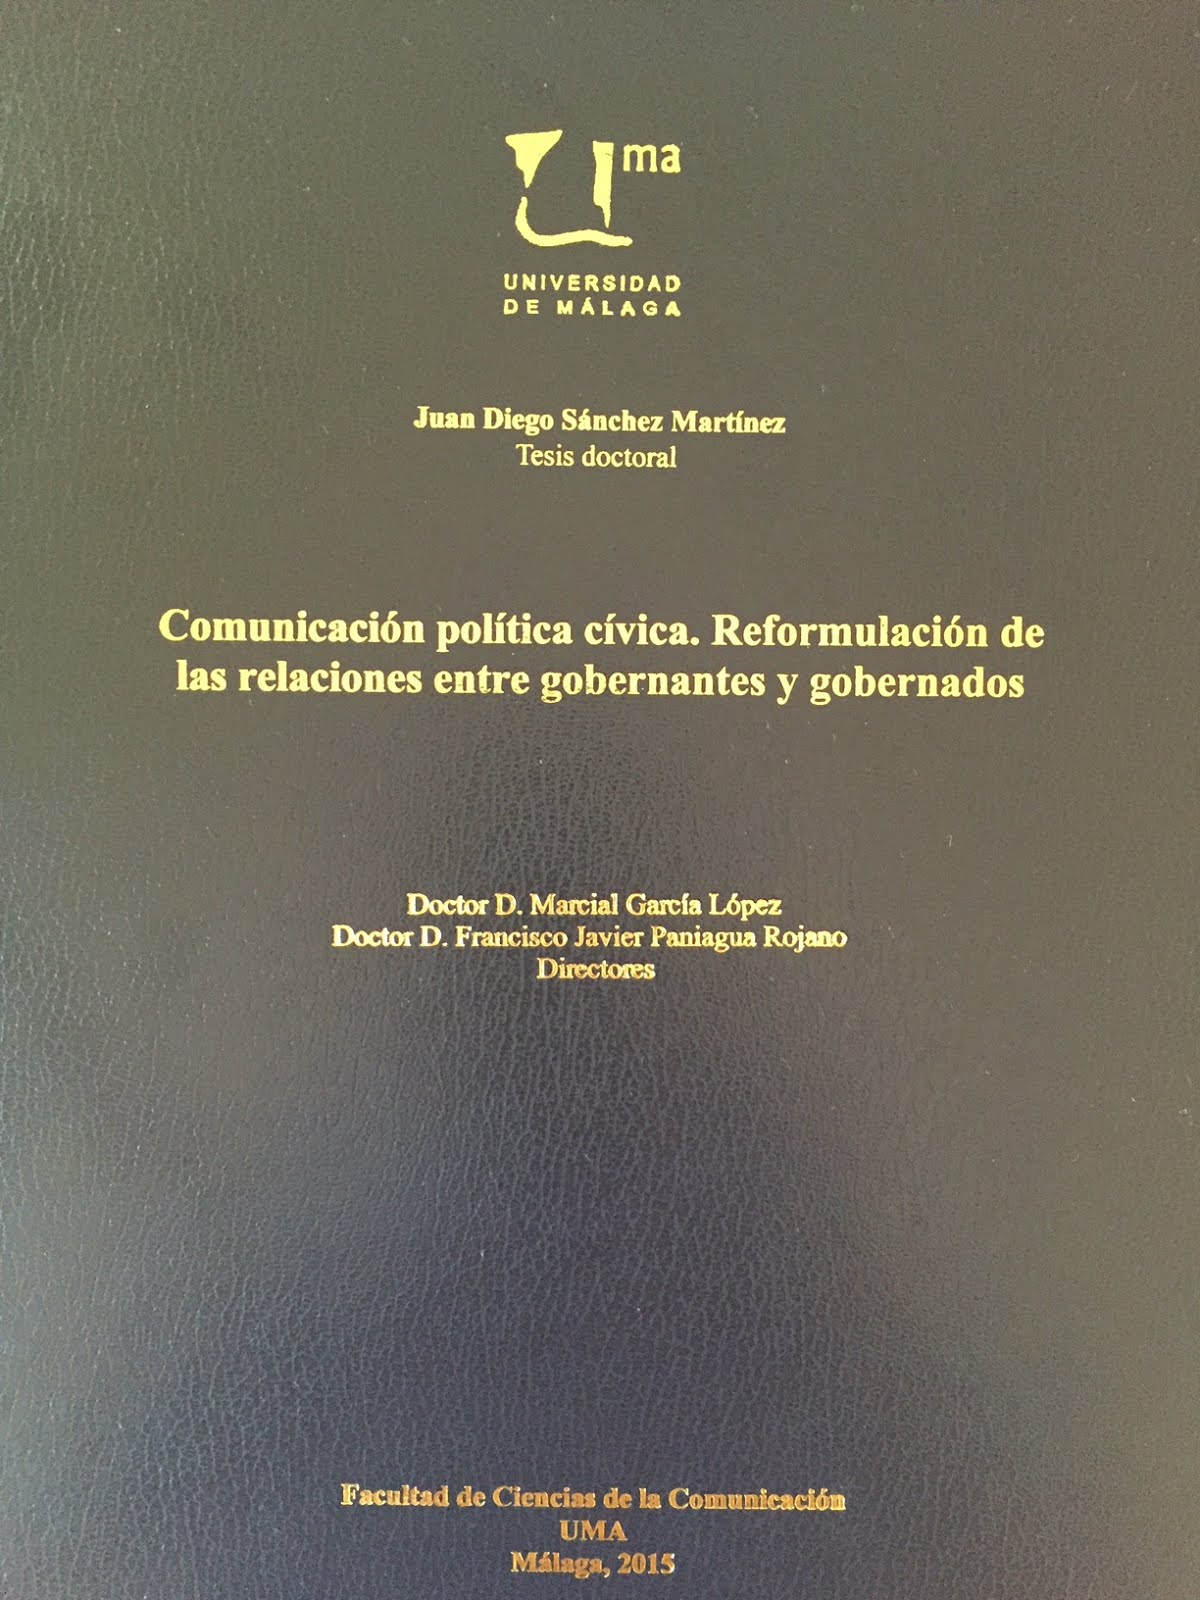 Mi tesis doctoral